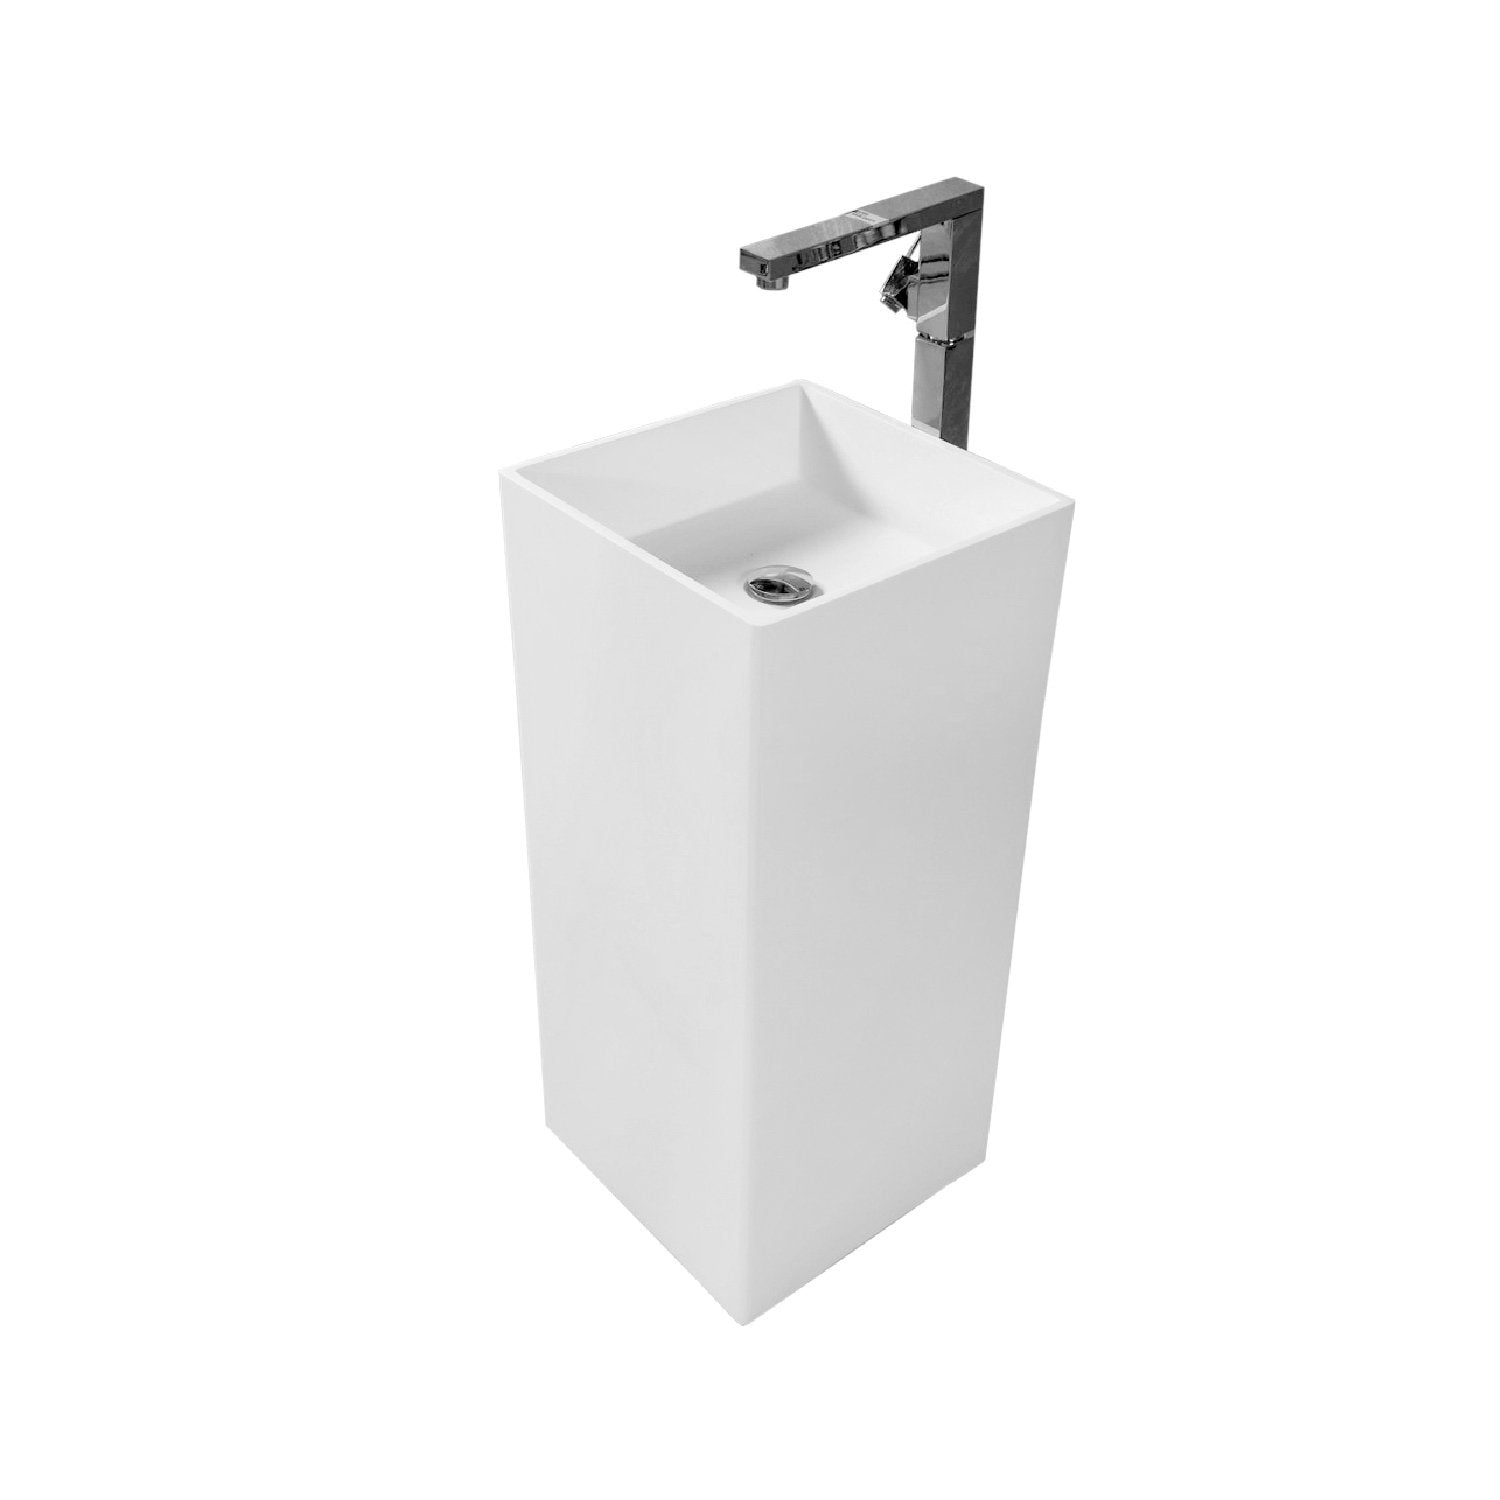 DAX Solid Surface Square Pedestal Freestanding Bathroom Sink, White Matte Finish, 15-3/4 x 15-3/4 x 34-1/2 Inches (DAX-AB-1382)